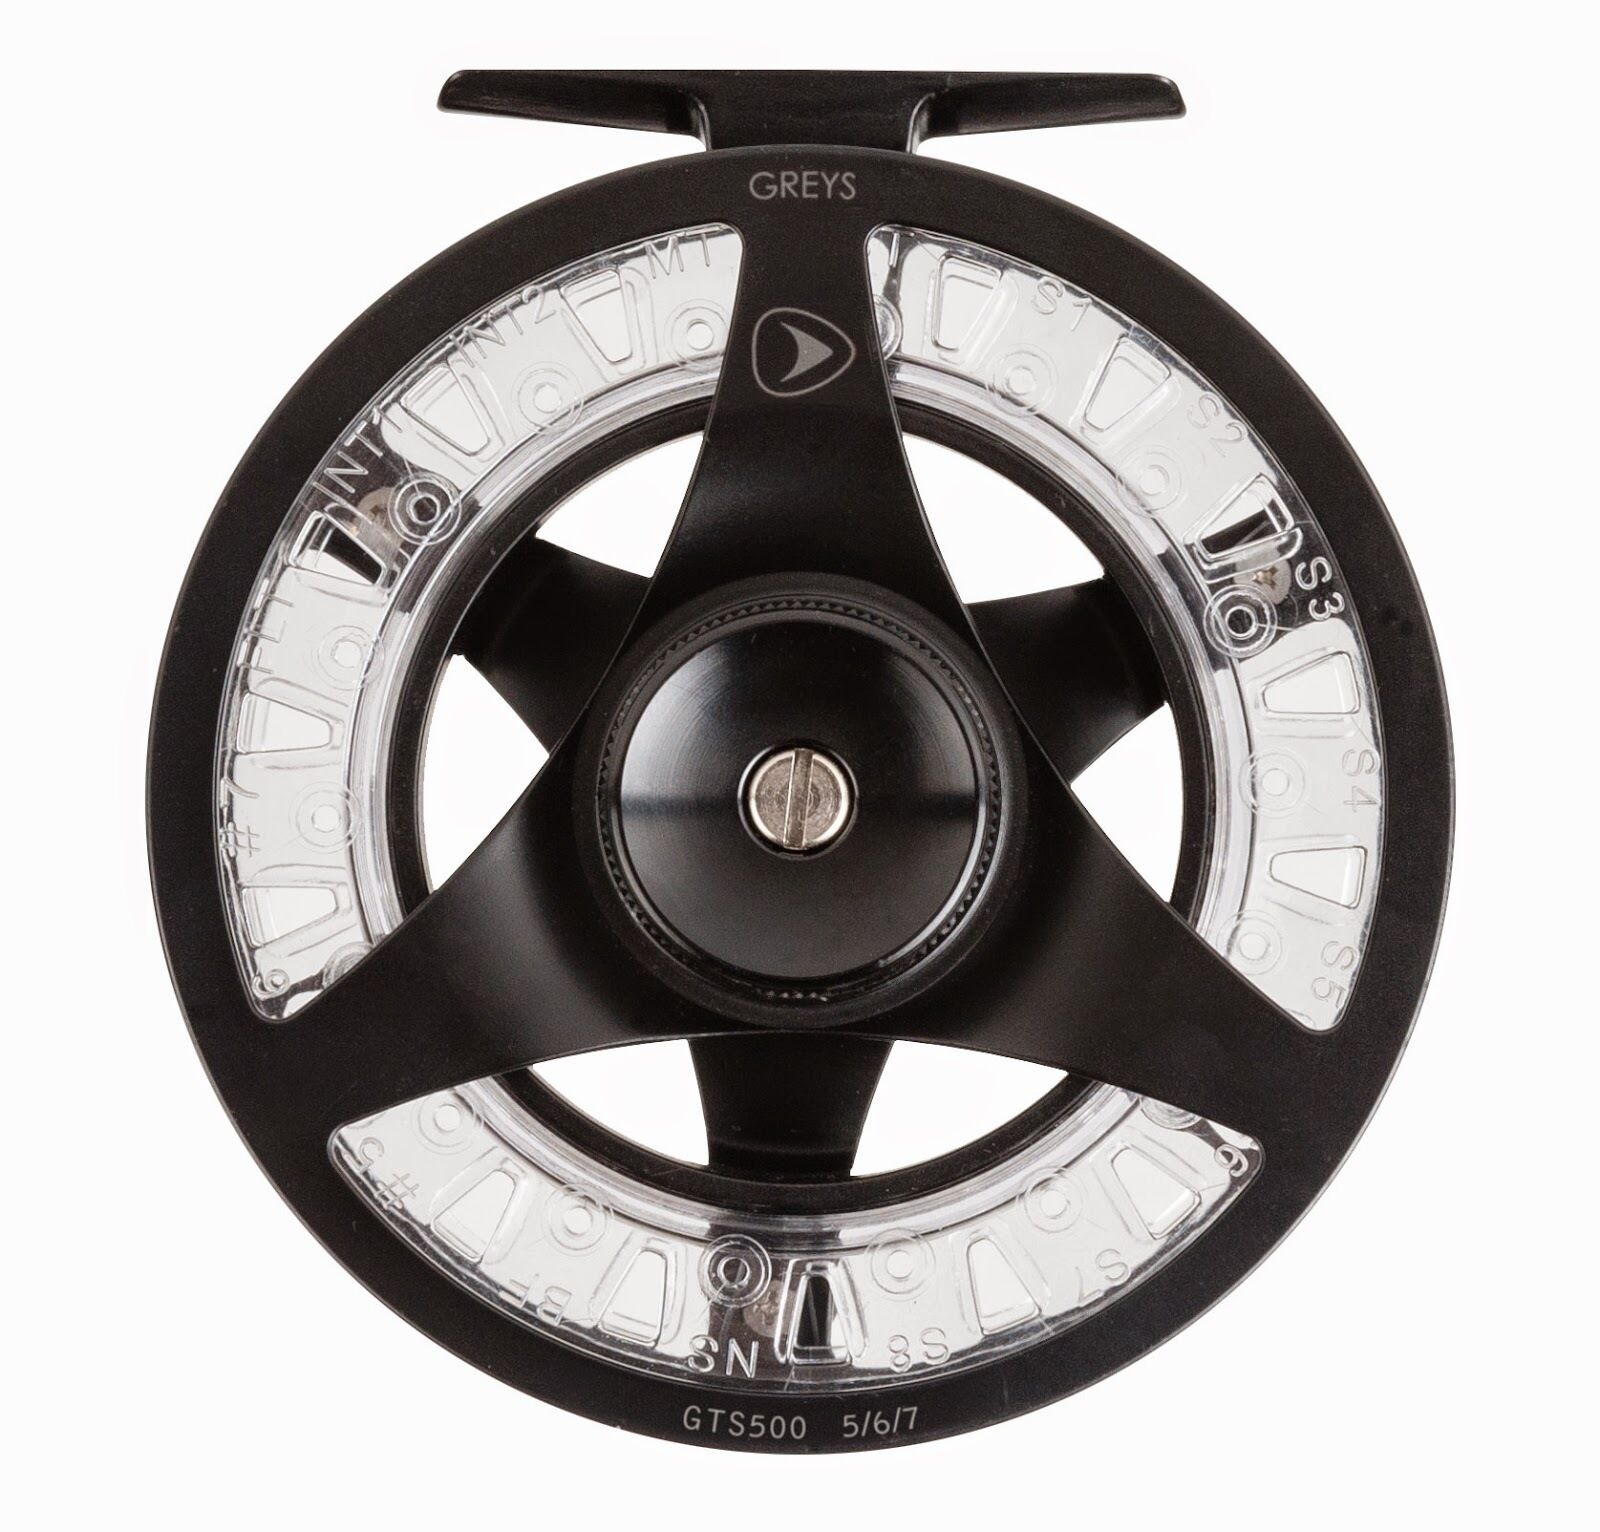 grigios GTS 500 Series Cassette Fly Reel Fresh / Salt Salt / Water - ALL SIZES +WARRANTY 13a1b5